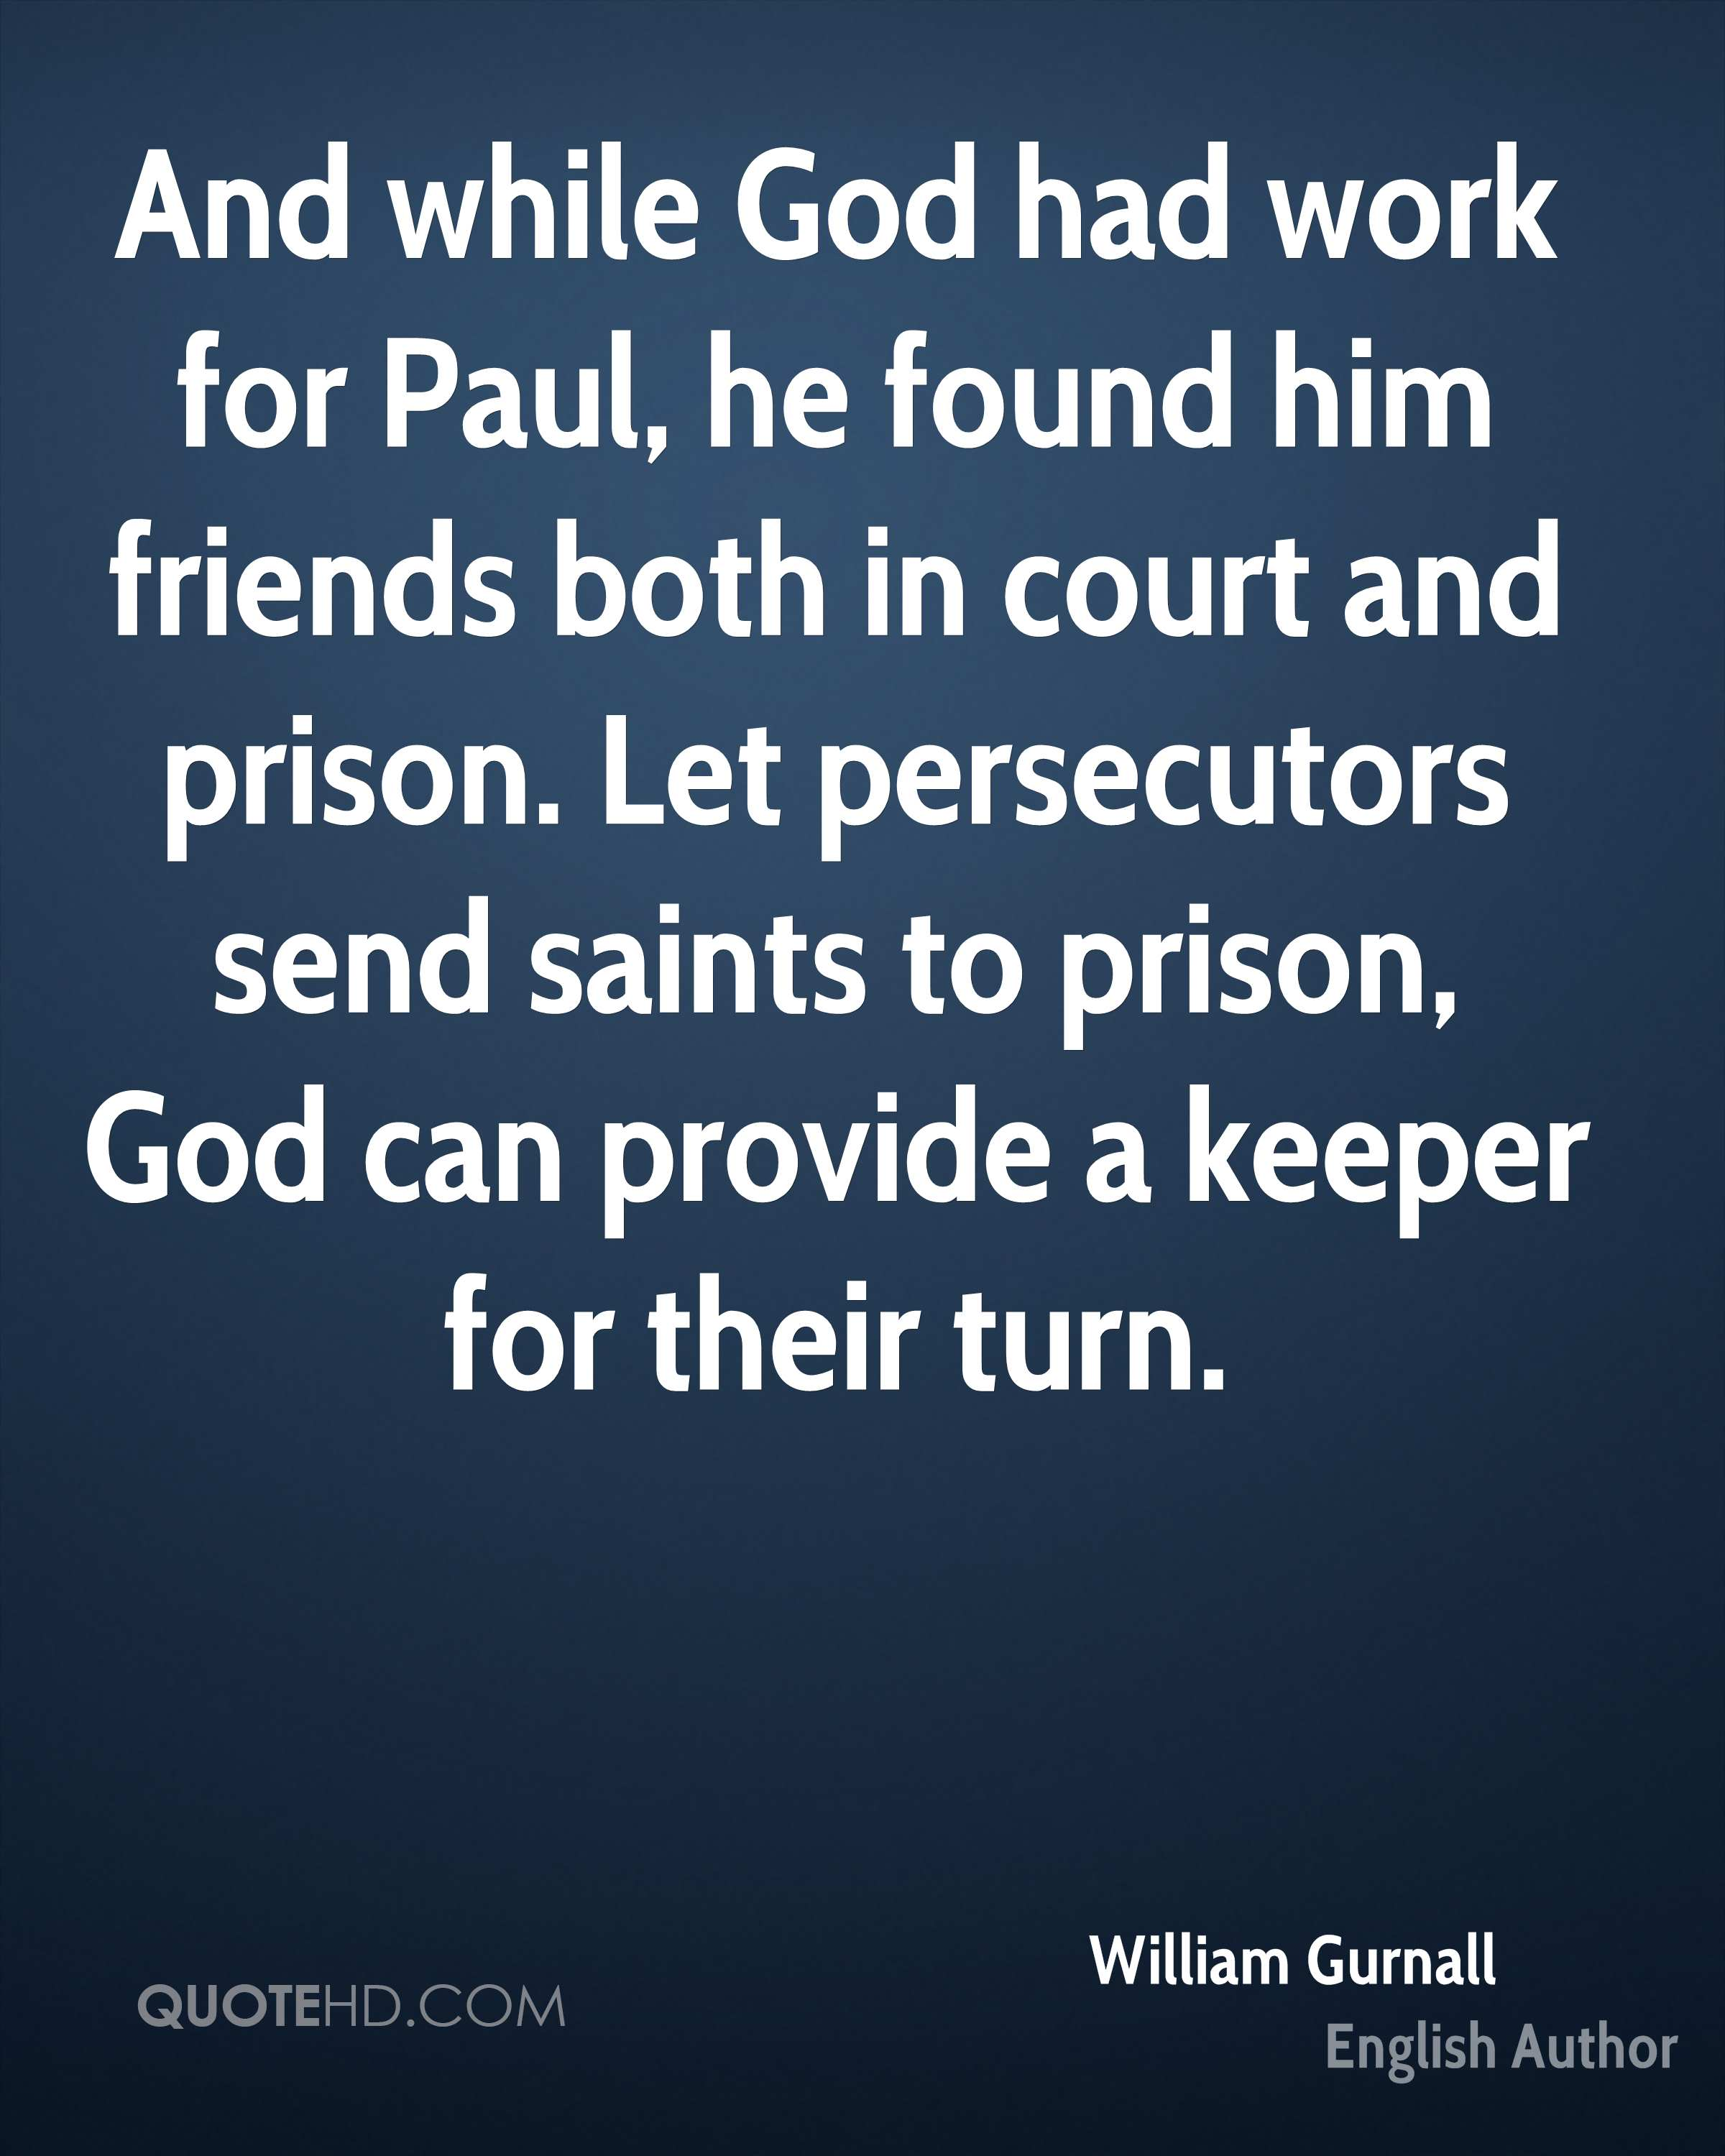 And while God had work for Paul, he found him friends both in court and prison. Let persecutors send saints to prison, God can provide a keeper for their turn.